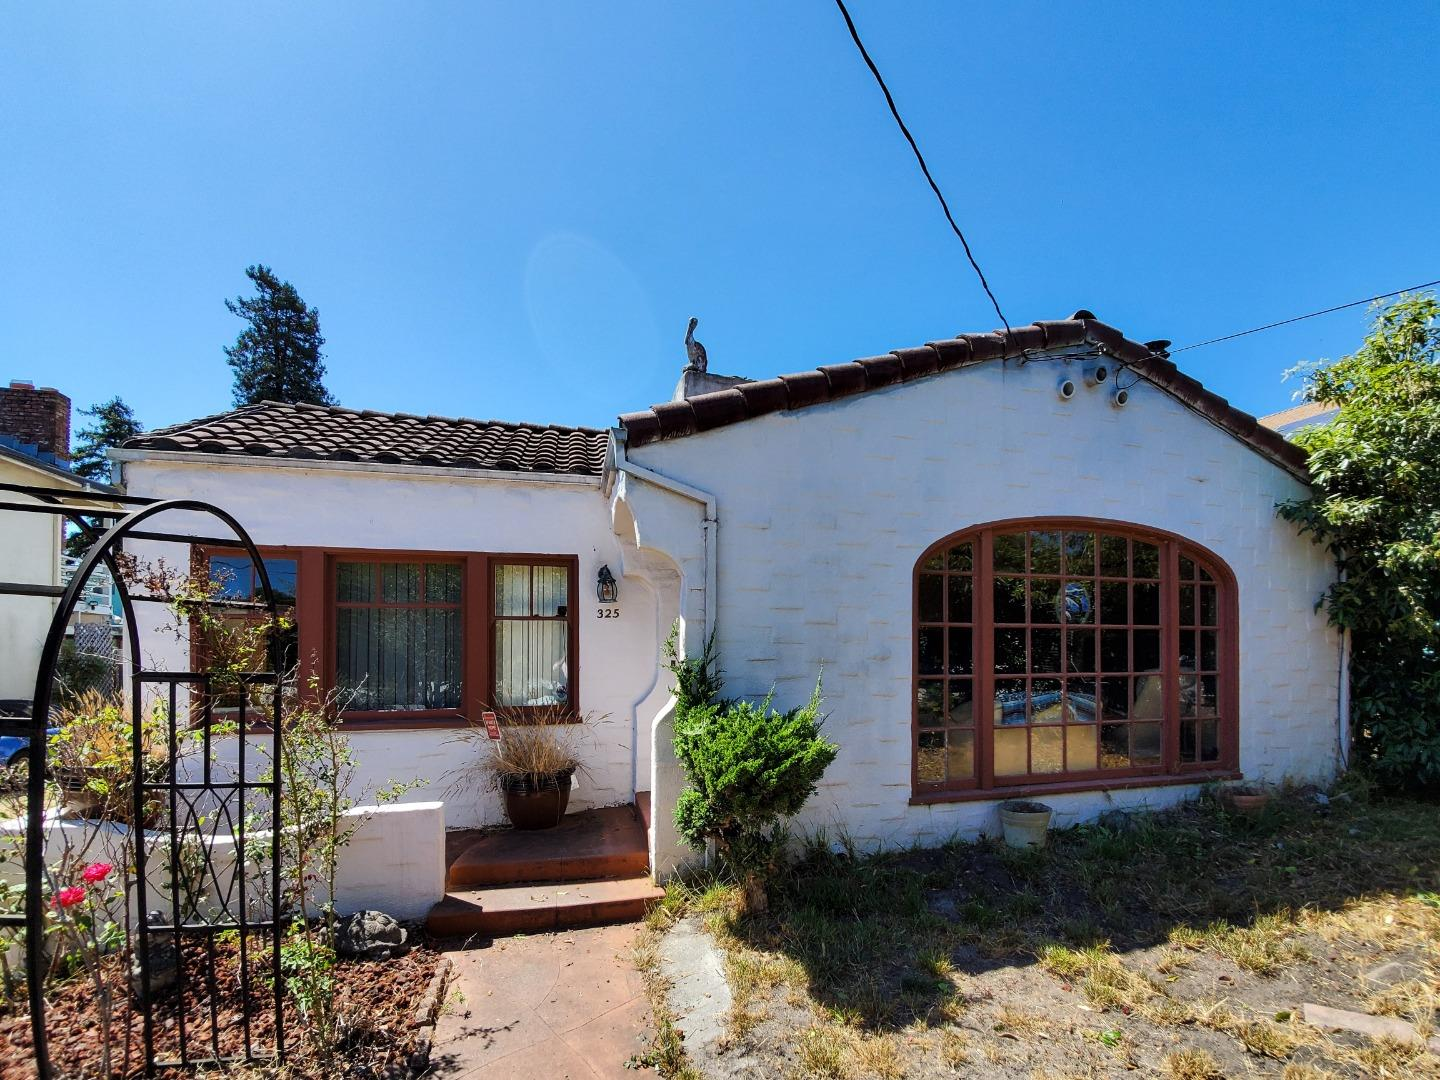 Opportunity knocks! A classic Westside Santa Cruz bungalow, centrally located near UCSC, this charming 2 bedroom, 1 bath home offers a great floor plan with spacious rooms. It includes a large living room with a big picture window and fireplace, a formal dining room with coved ceiling, a huge updated kitchen with breakfast nook, oak cabinets, granite counters, tile floors and gas stove. There are 2 big bedrooms and a generously sized bathroom with tub and dual vanities. There is also an inside laundry/utility room. There is an additional room in the back of the house that is partially constructed which would be a fabulous master suite when completed. There are hardwood floors, and some dual pane windows. Spacious backyard and detached garage. This home offers a wonderful opportunity for a contractor or someone willing to do some repair and renovation work. It has great investment/rental potential too because you have a premium location near UCSC and downtown Santa Cruz.